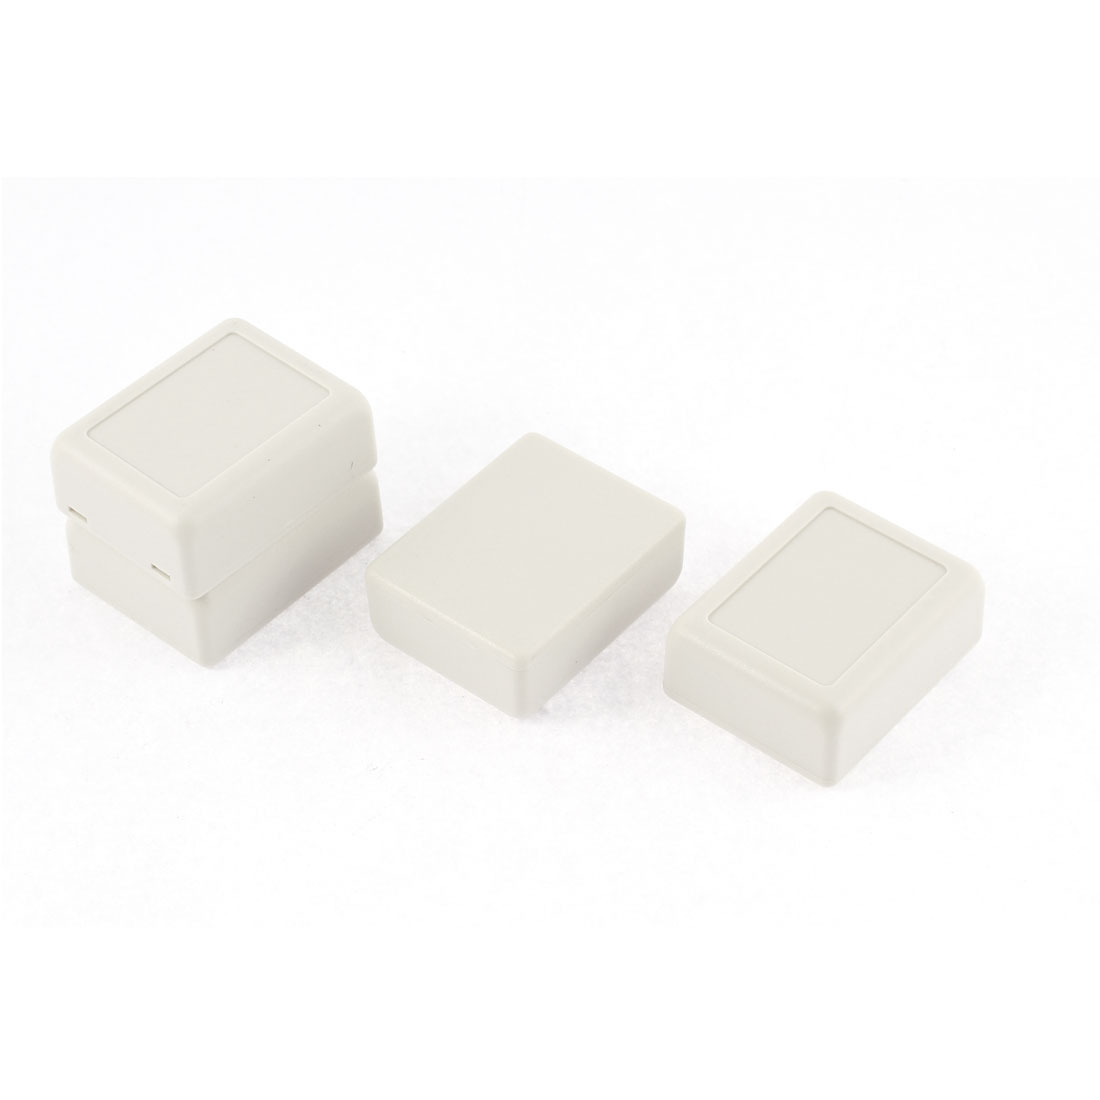 46mmx36mmx18mm Dustproof IP65 Plastic Enclosure Case DIY Junction Box 4 Pcs